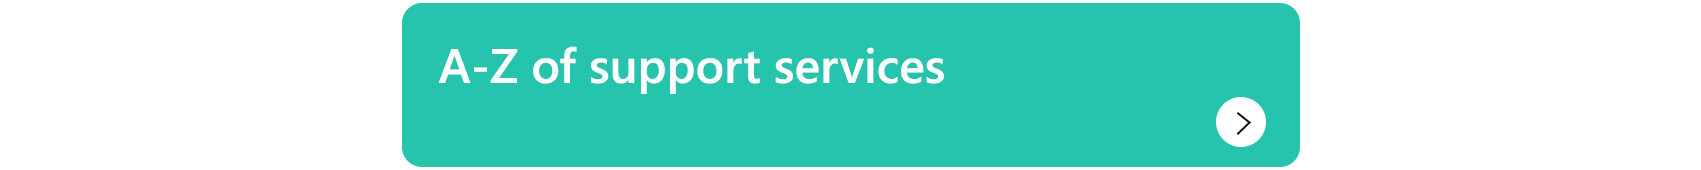 A-Z of support services